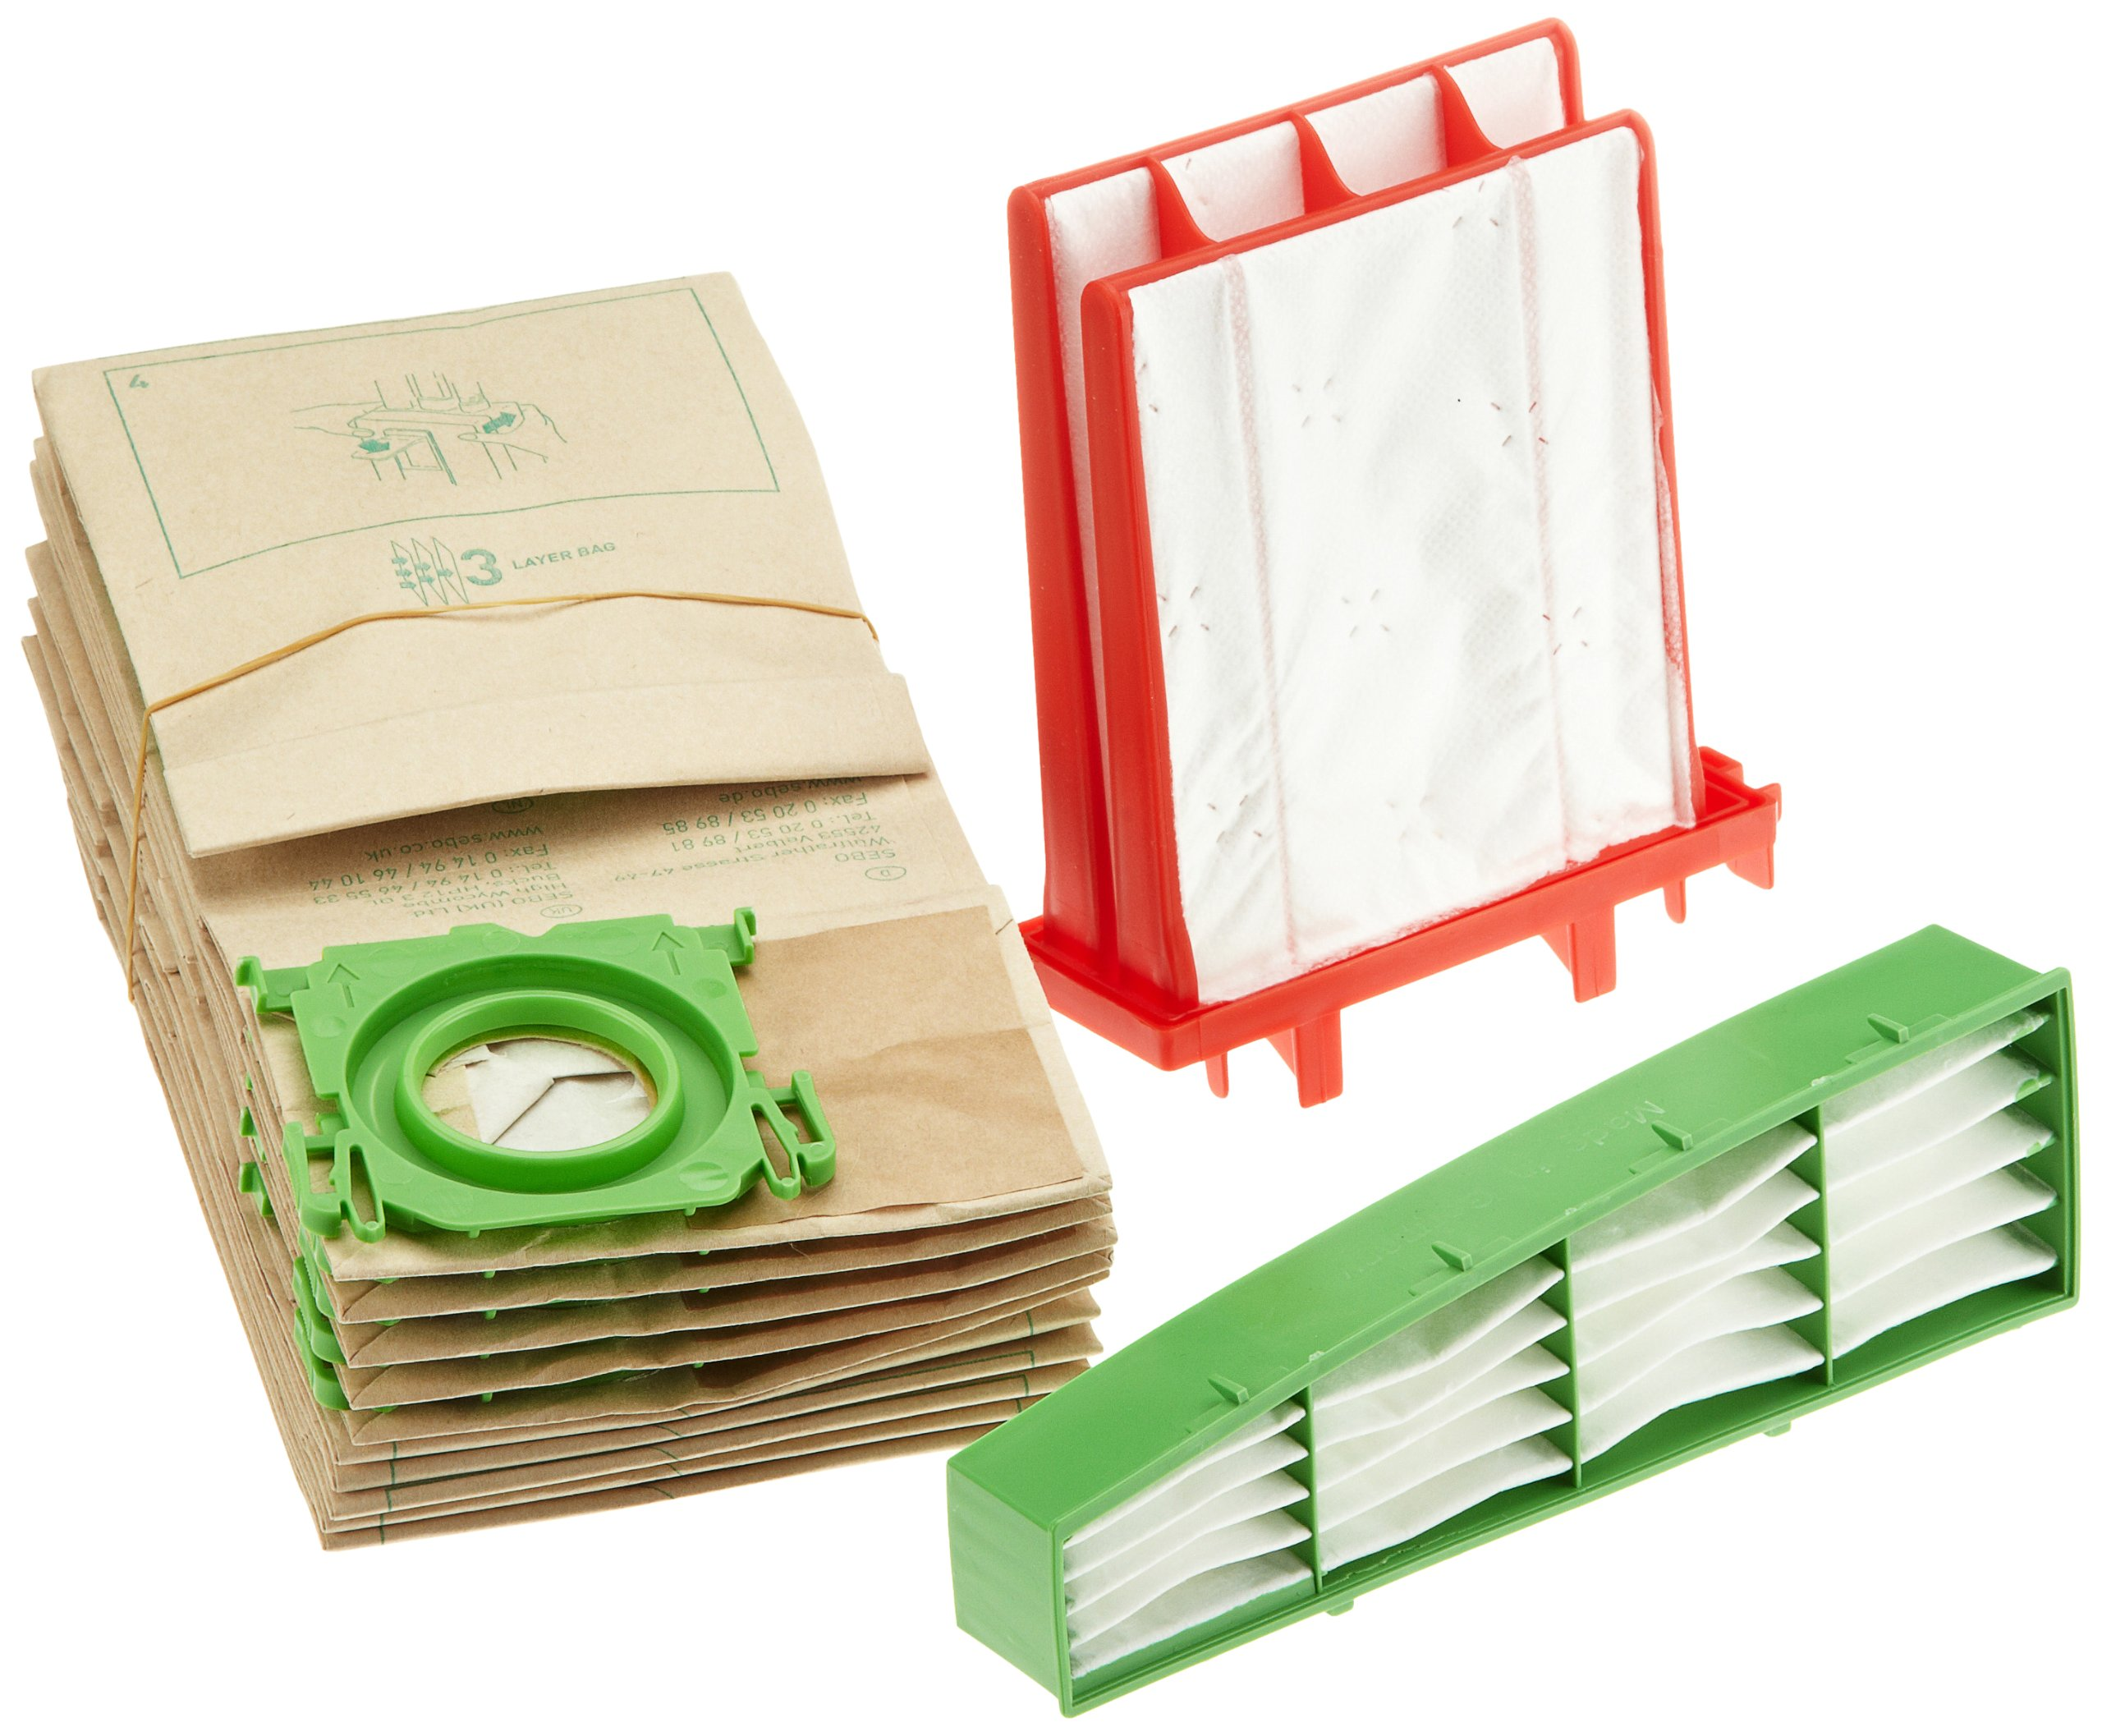 Sebo 6198ER Service-Box for Airbelt C2/ C2.1/ C3/ C3.1 includes 10 Filter Bags 3 Layer 1 Hospital Grade Filter and 1 Micro Hygiene Filter